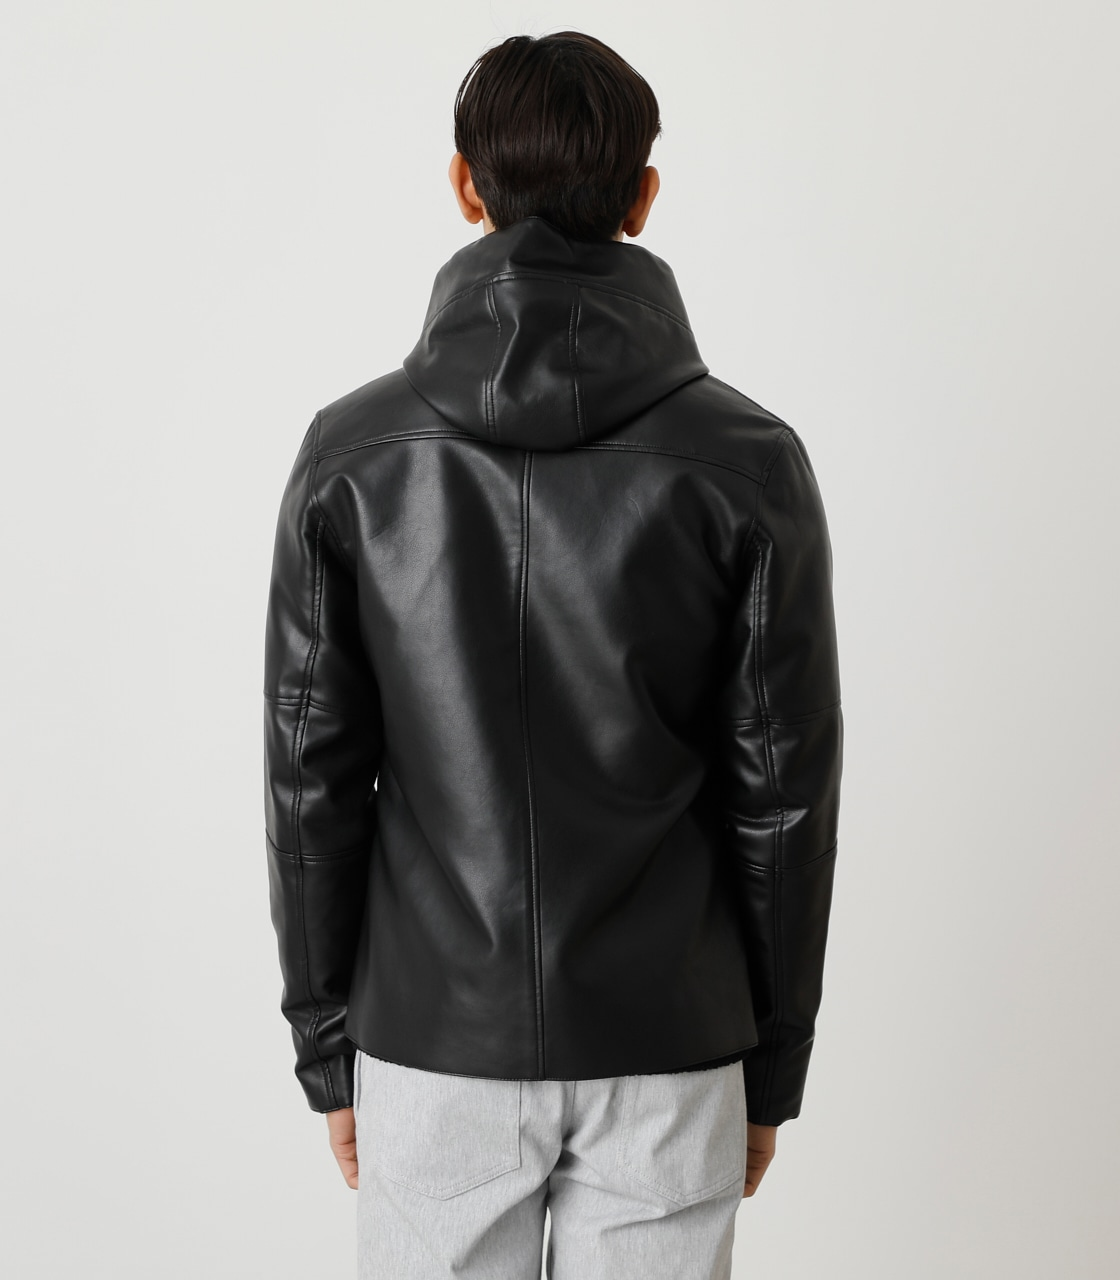 ECO LEATHER HOODED/エコレザーフーデッド 詳細画像 BLK 7